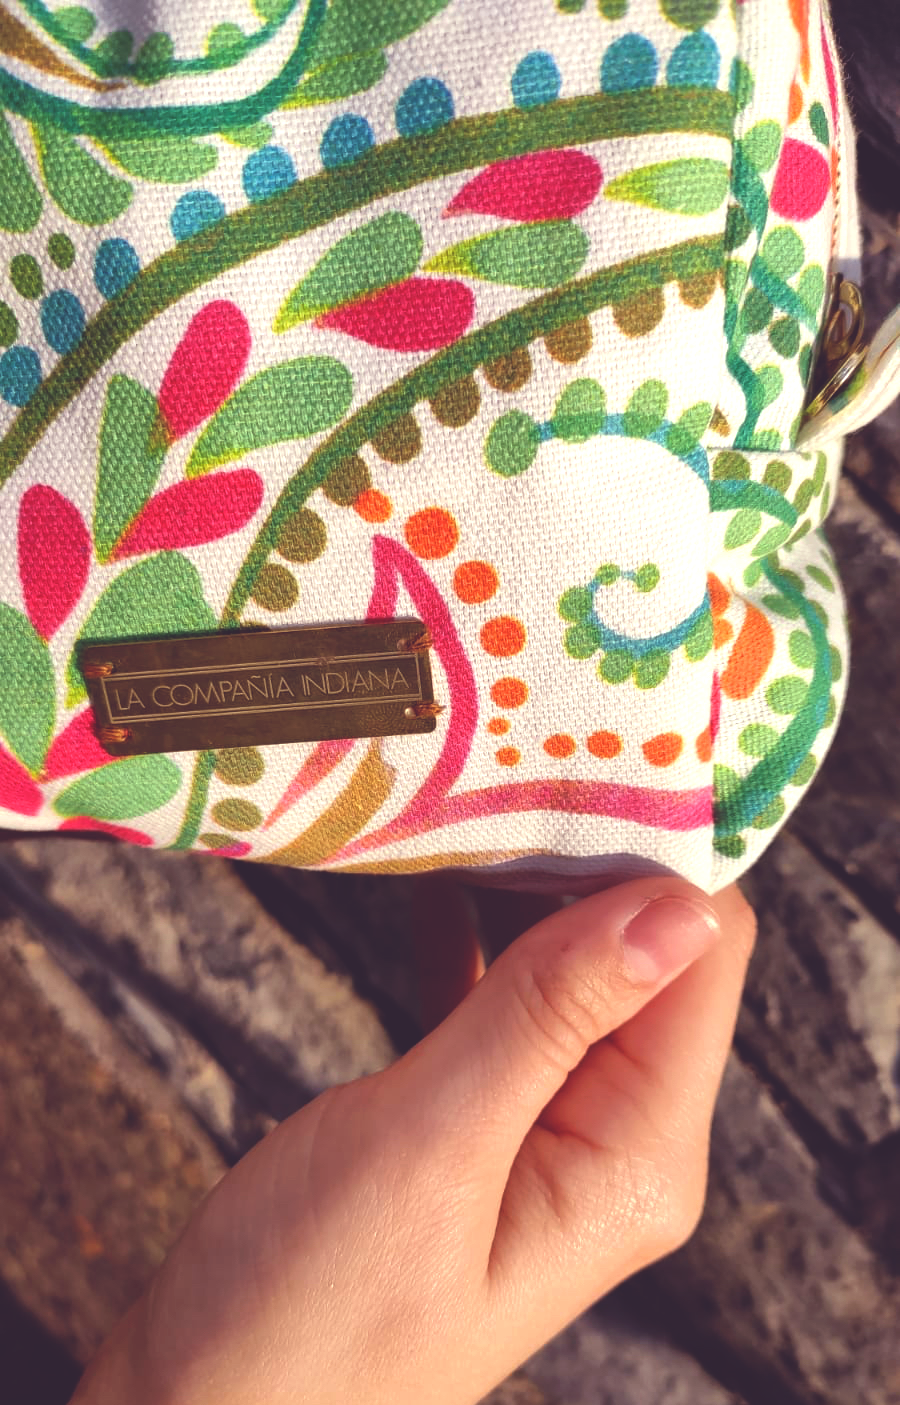 <transcy>Yucatan toiletry bag</transcy>